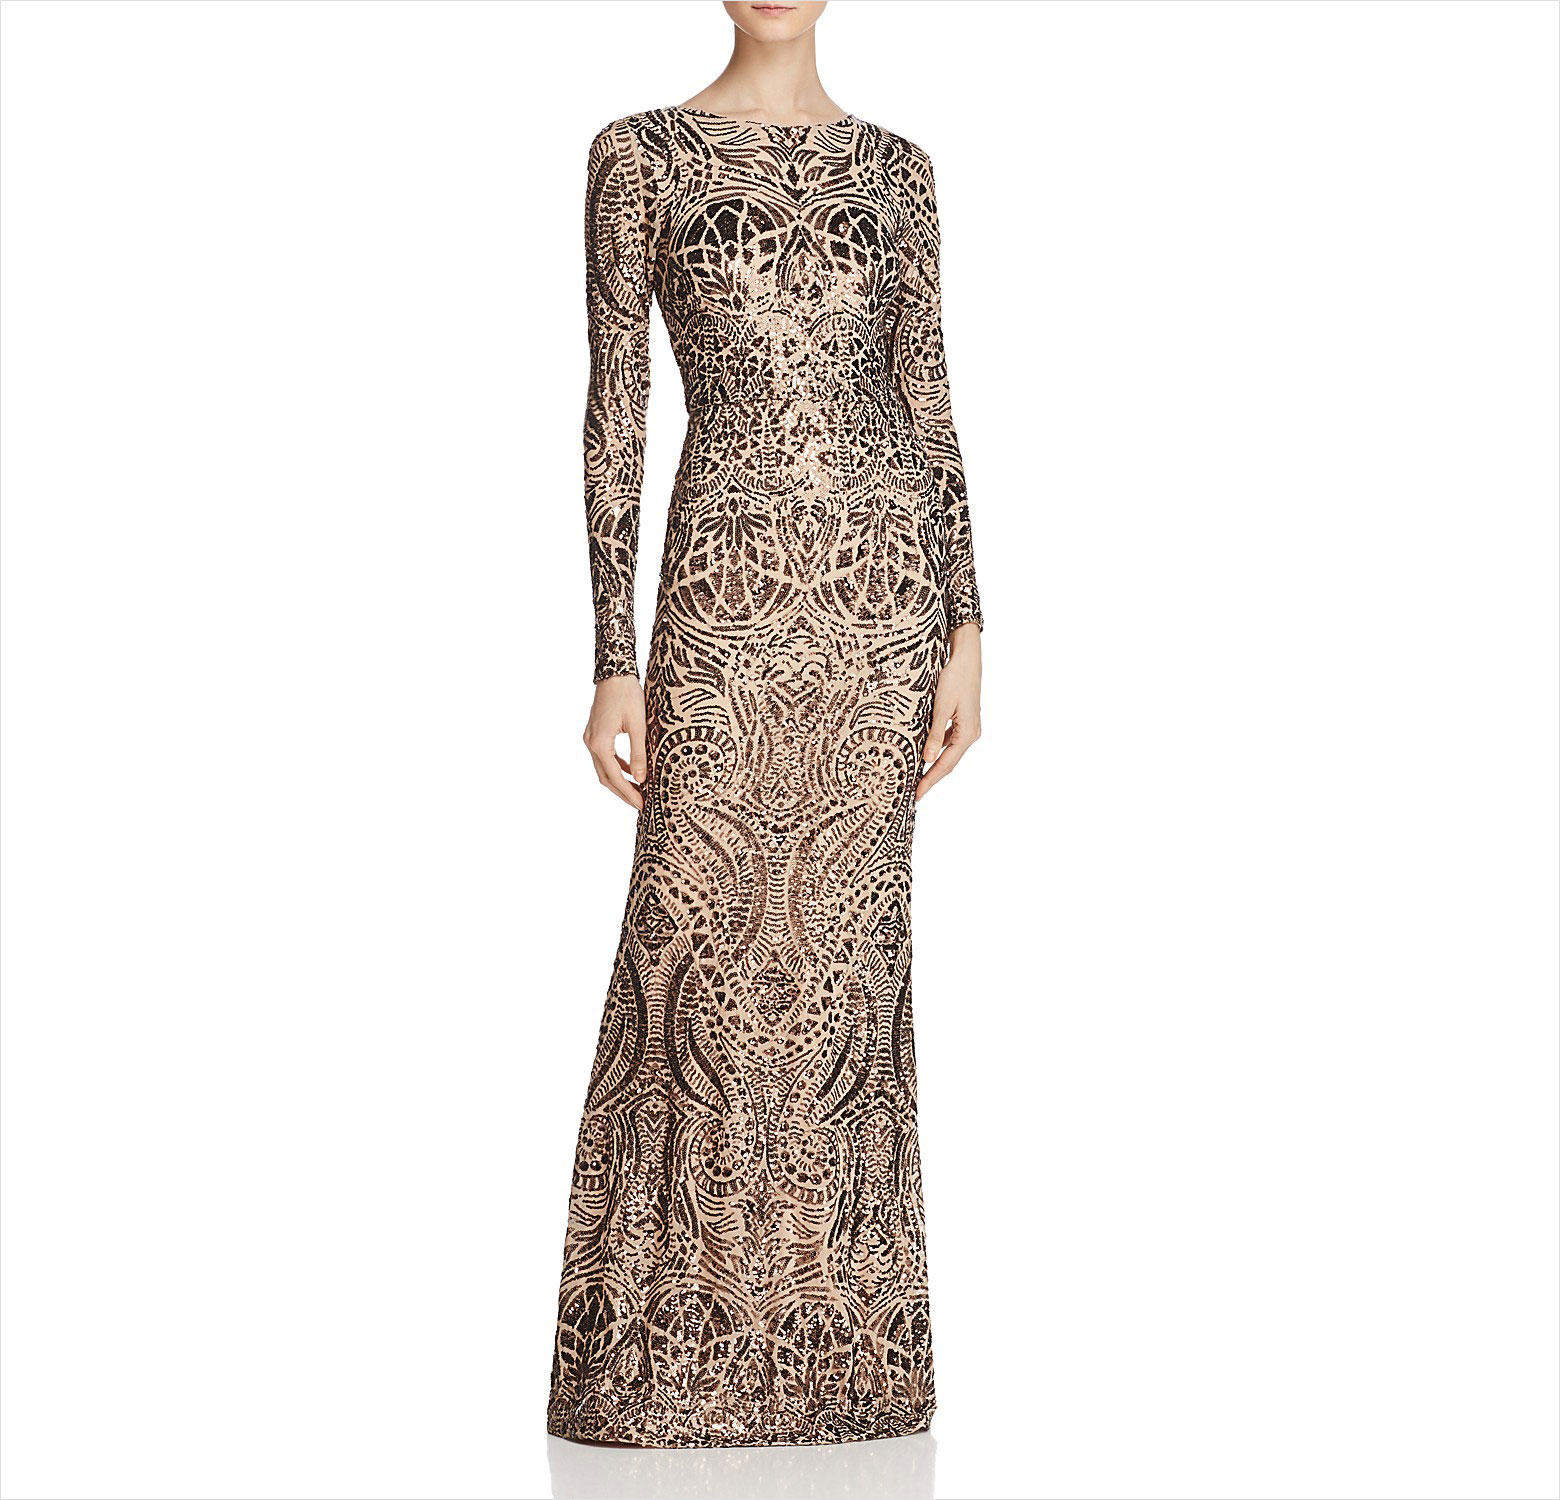 Long sleeve sparkly wedding guest dress ideas Avery G Bloomingdales